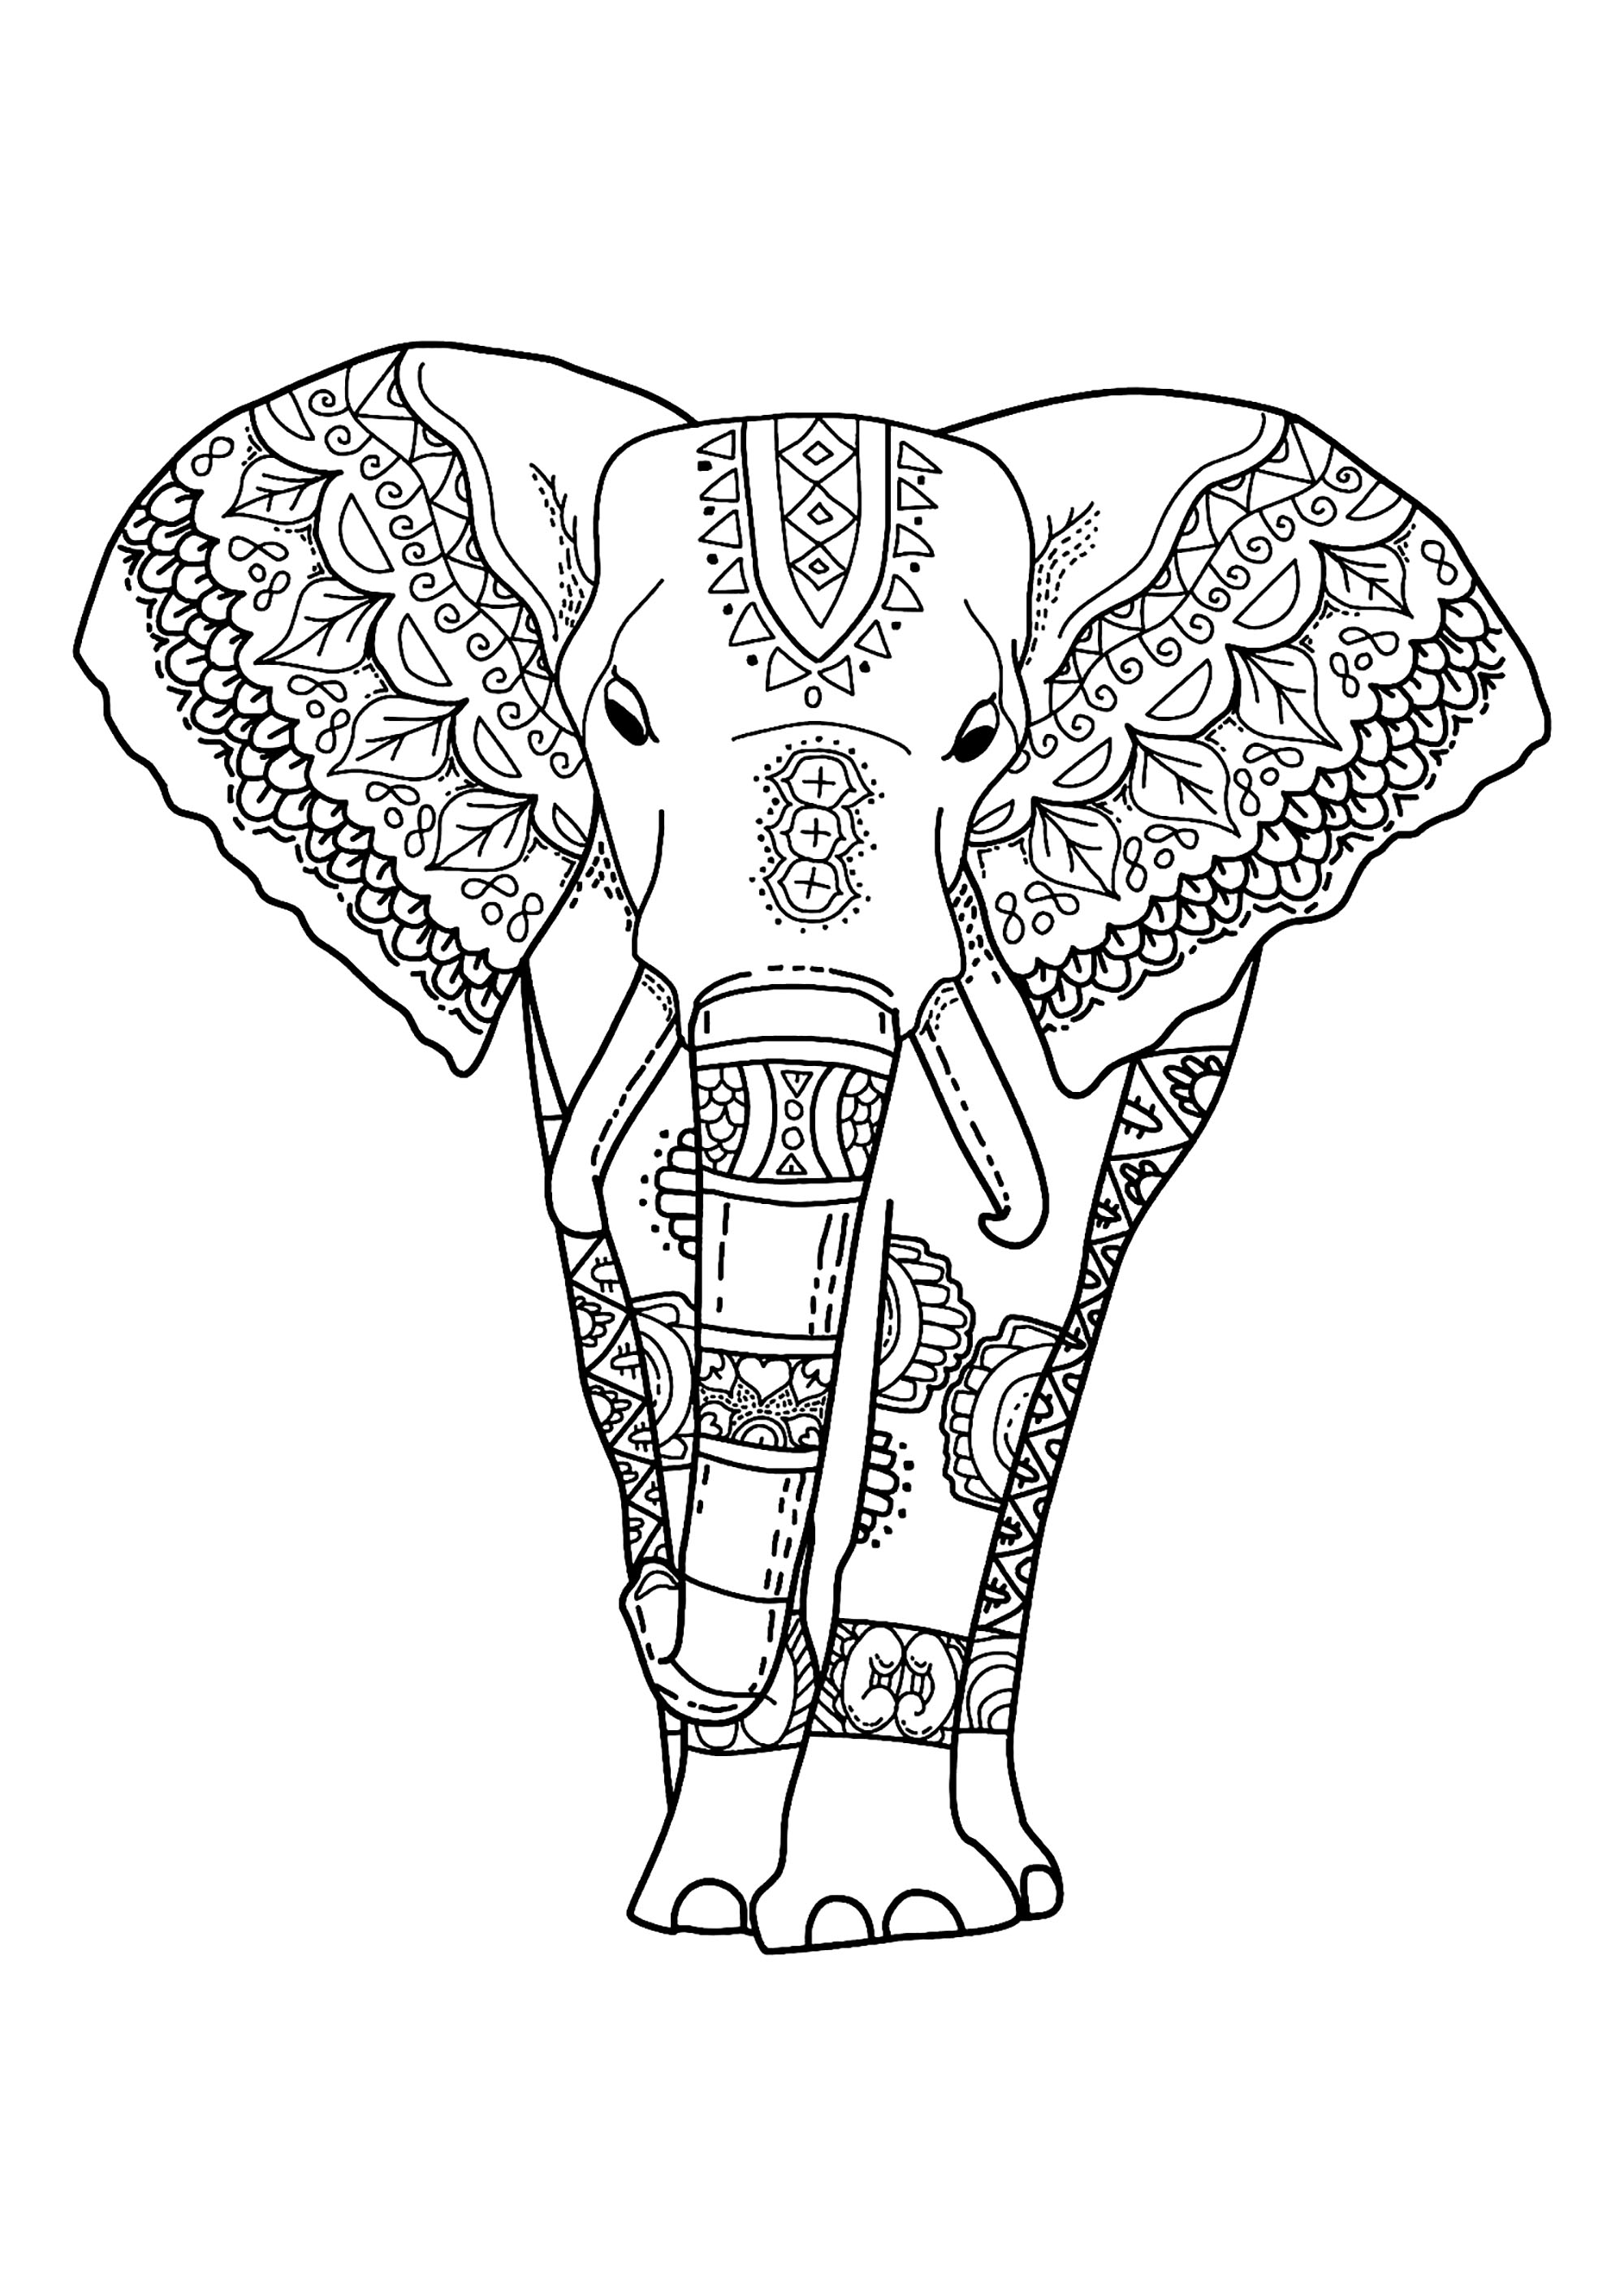 elephant coloring pages elephants to color for children elephants kids coloring elephant coloring pages